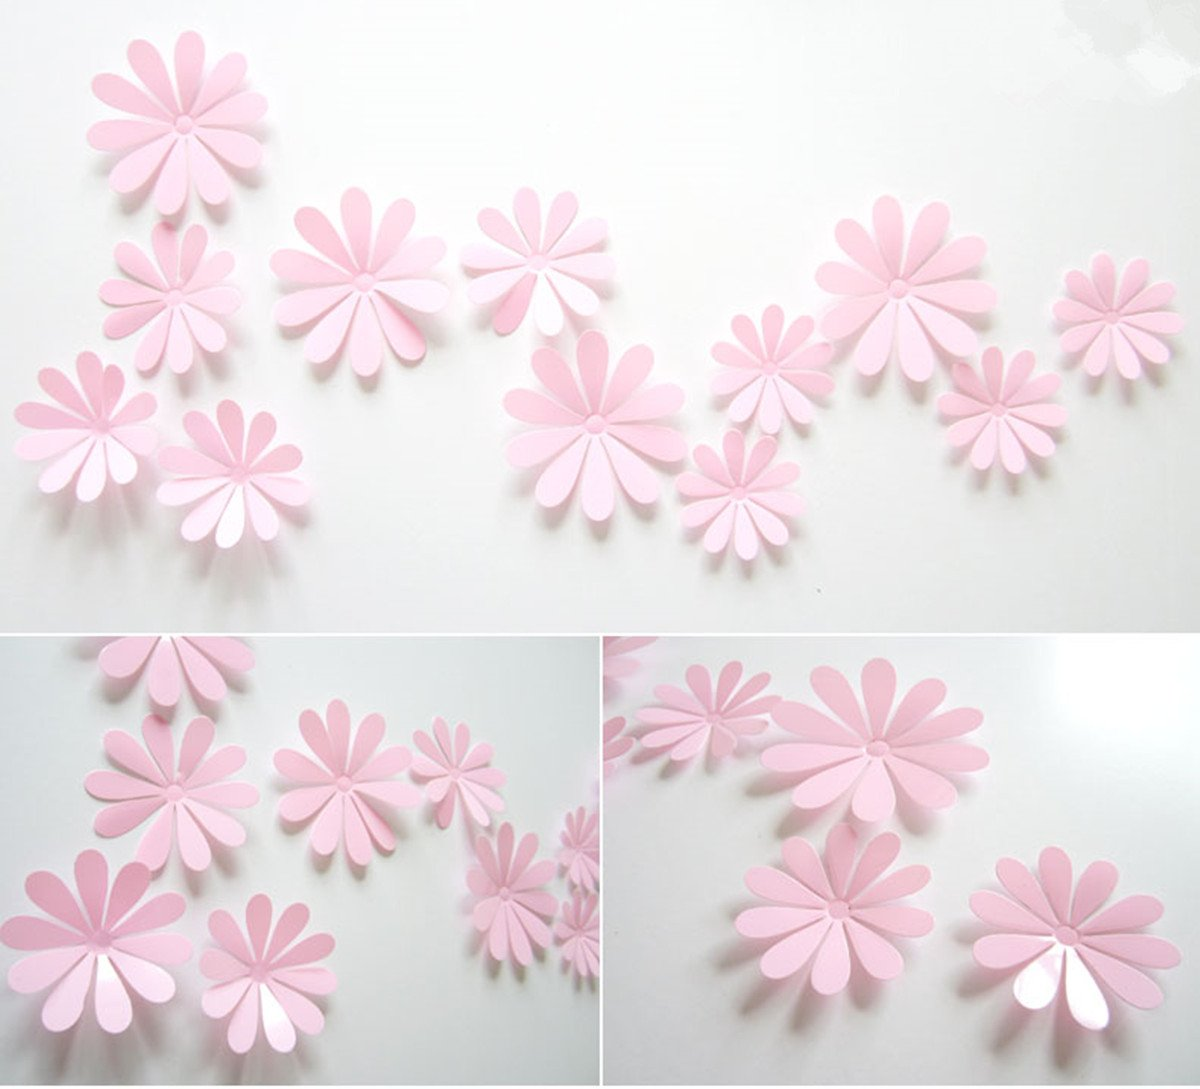 Jackie 12pcs//Pack Blue PVC 3D Decorative Flowers Decal Removable Wall Art Sticker for Home Decor and Wedding Party Decoration